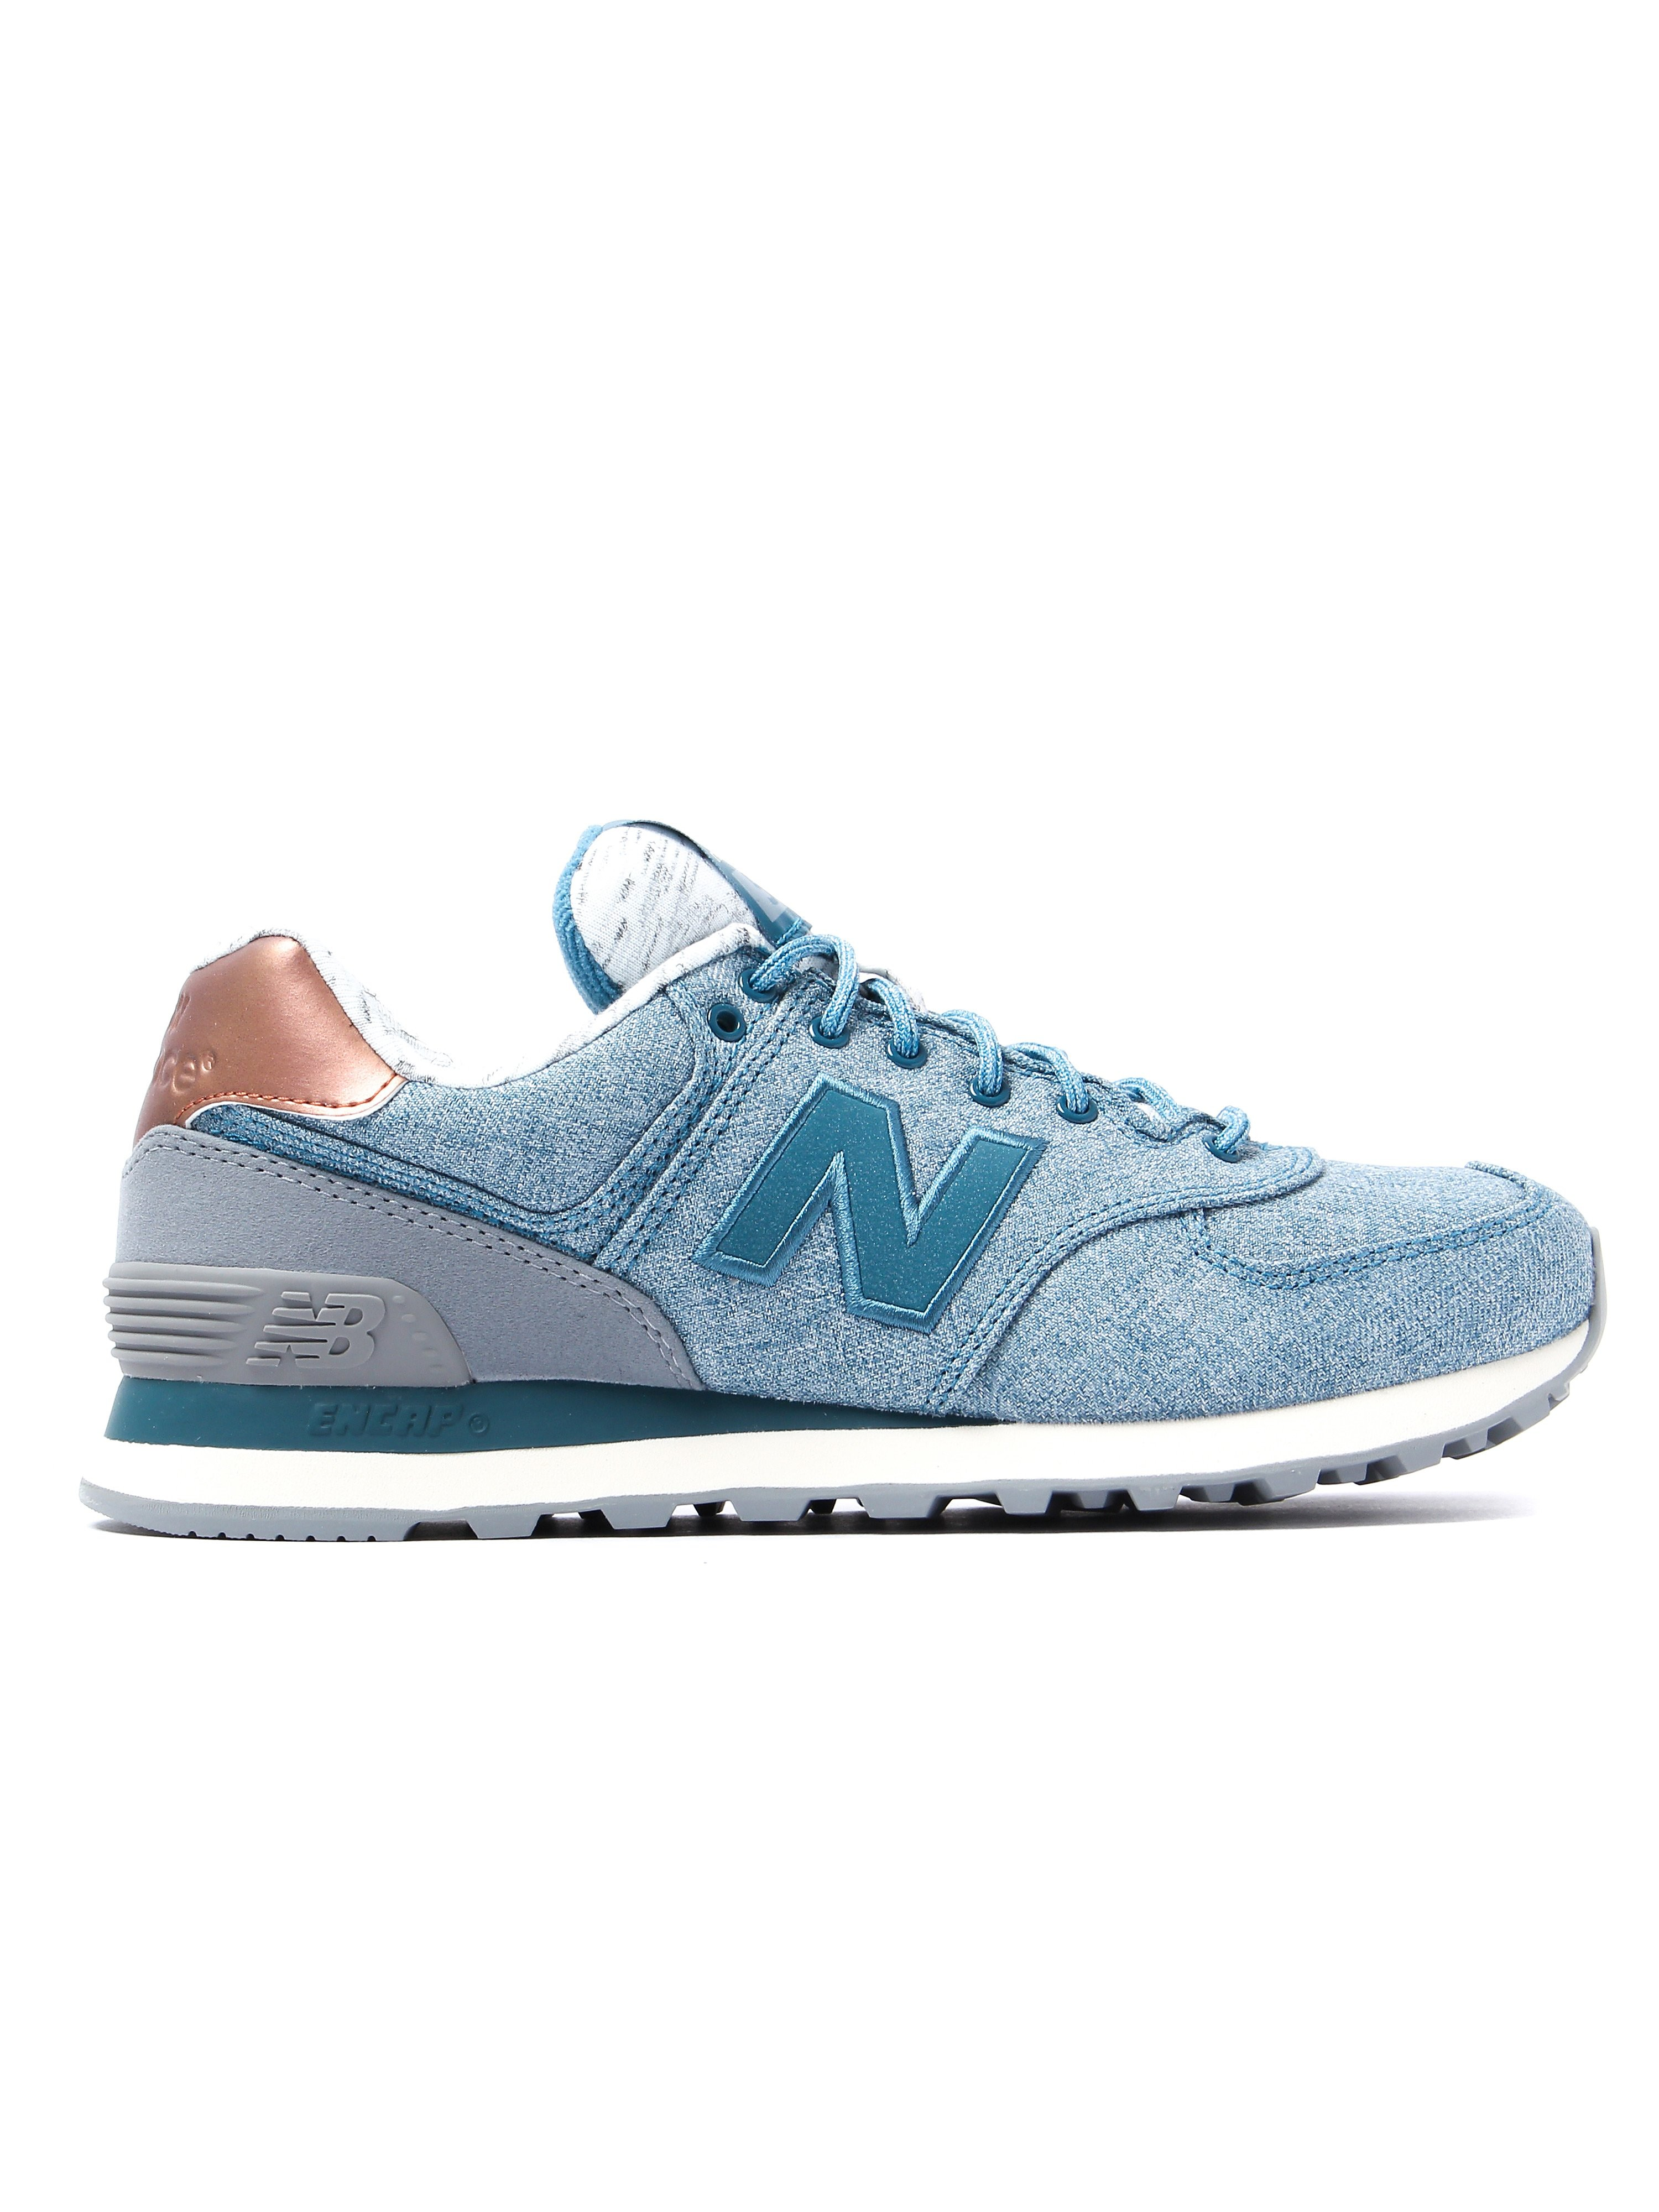 New Balance Women's 574 Low Top Trainers - Blue & Gold